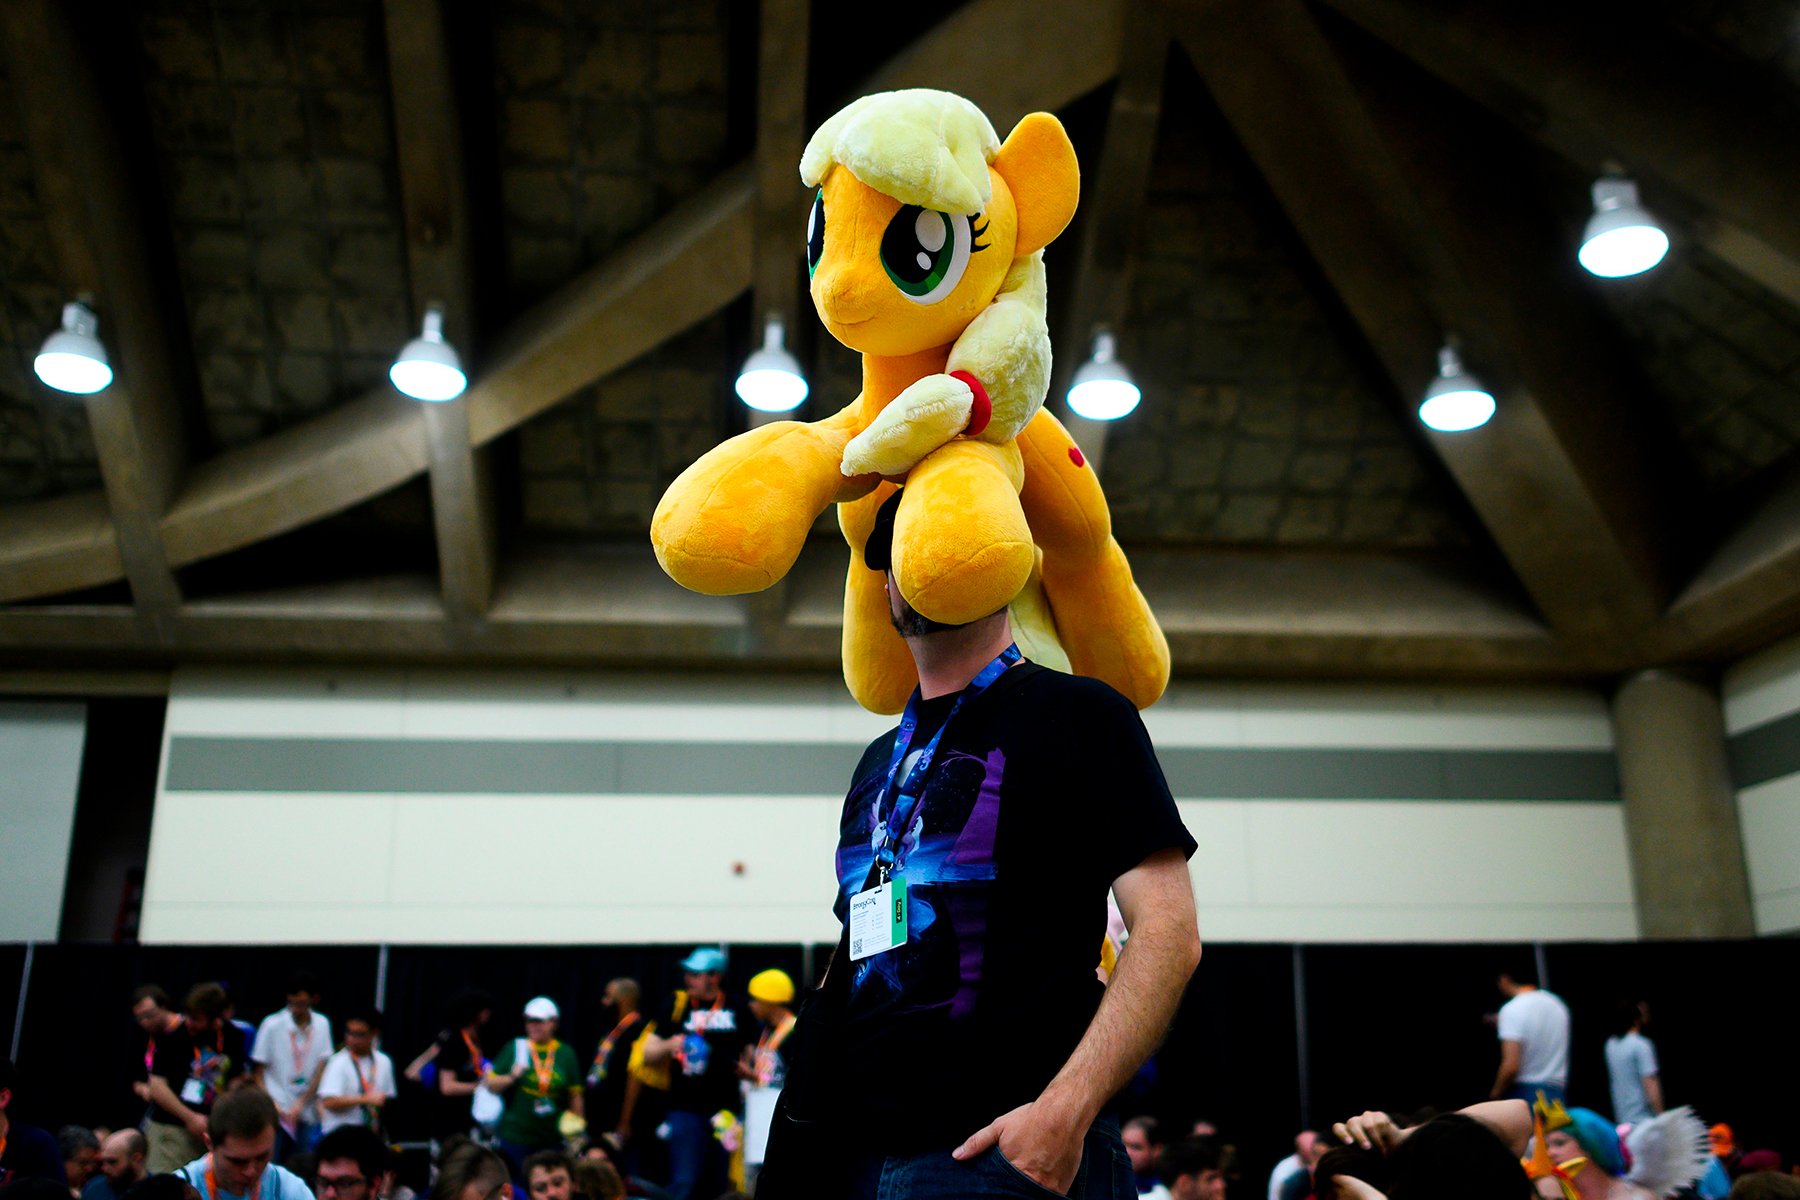 """A man waits in line for the opening ceremony during the BronyCon convention, a gathering for """"My Little Pony"""" fans, at the Baltimore Convention centre in Baltimore, Maryland on August 1, 2019. - BronyCon is an annual fan convention held for fans of """"My Little Pony: Friendship Is Magic,"""" among them adult and teenage fans of the show, who call themselves Bronies. The 2019 convention will be the final BronyCon. (Photo by Andrew CABALLERO-REYNOLDS / AFP)        (Photo credit should read ANDREW CABALLERO-REYNOLDS/AFP via Getty Images)"""